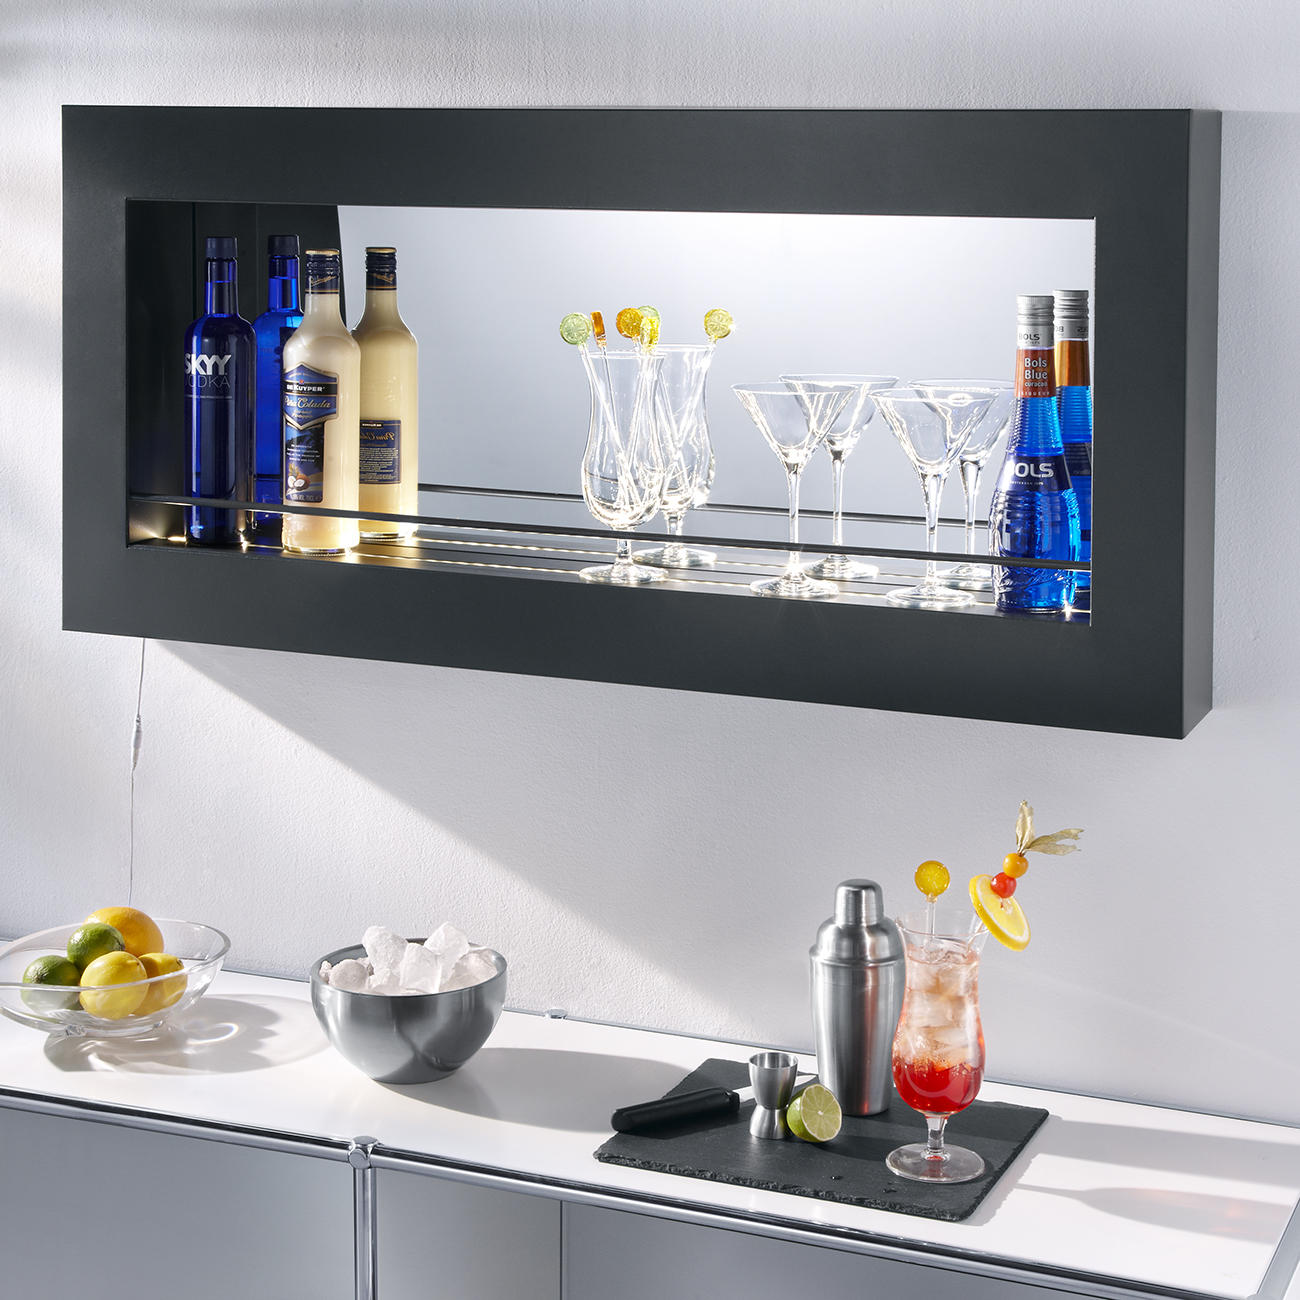 Probell Encore 110 Led Wandregal Als Bar Element Pulverbeschichteter Stahl 110 X 52 X 12 Cm Anthrazit